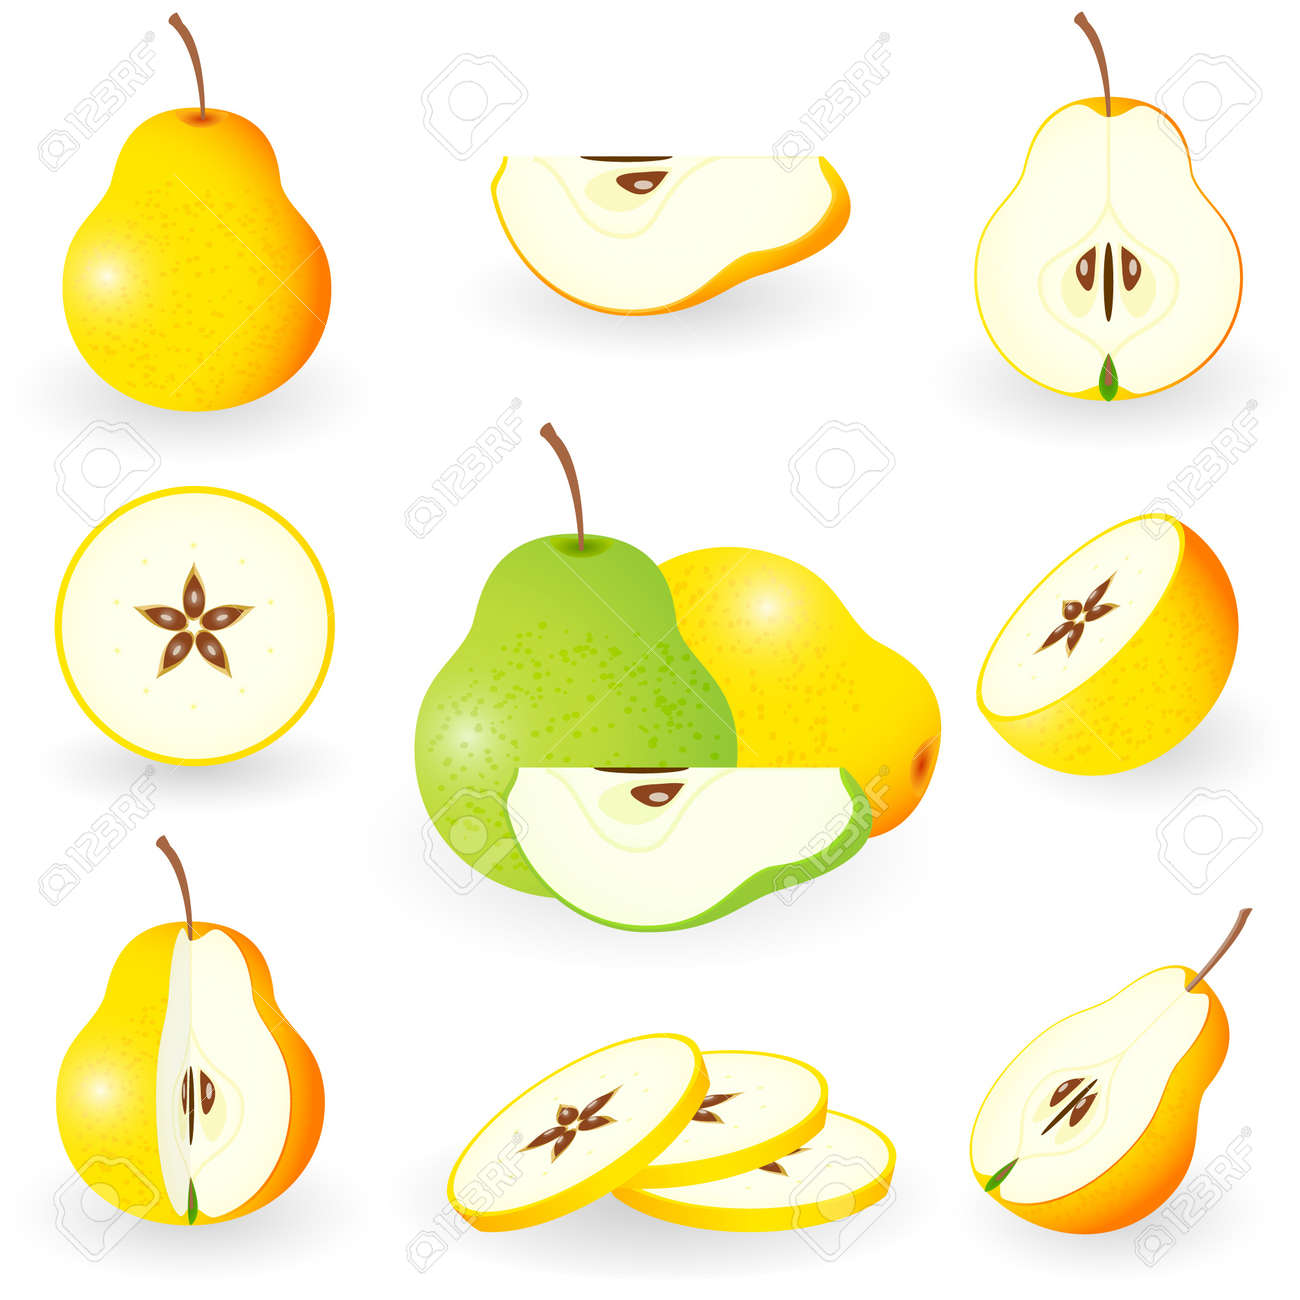 Icon Set Pear Stock Vector - 10226261